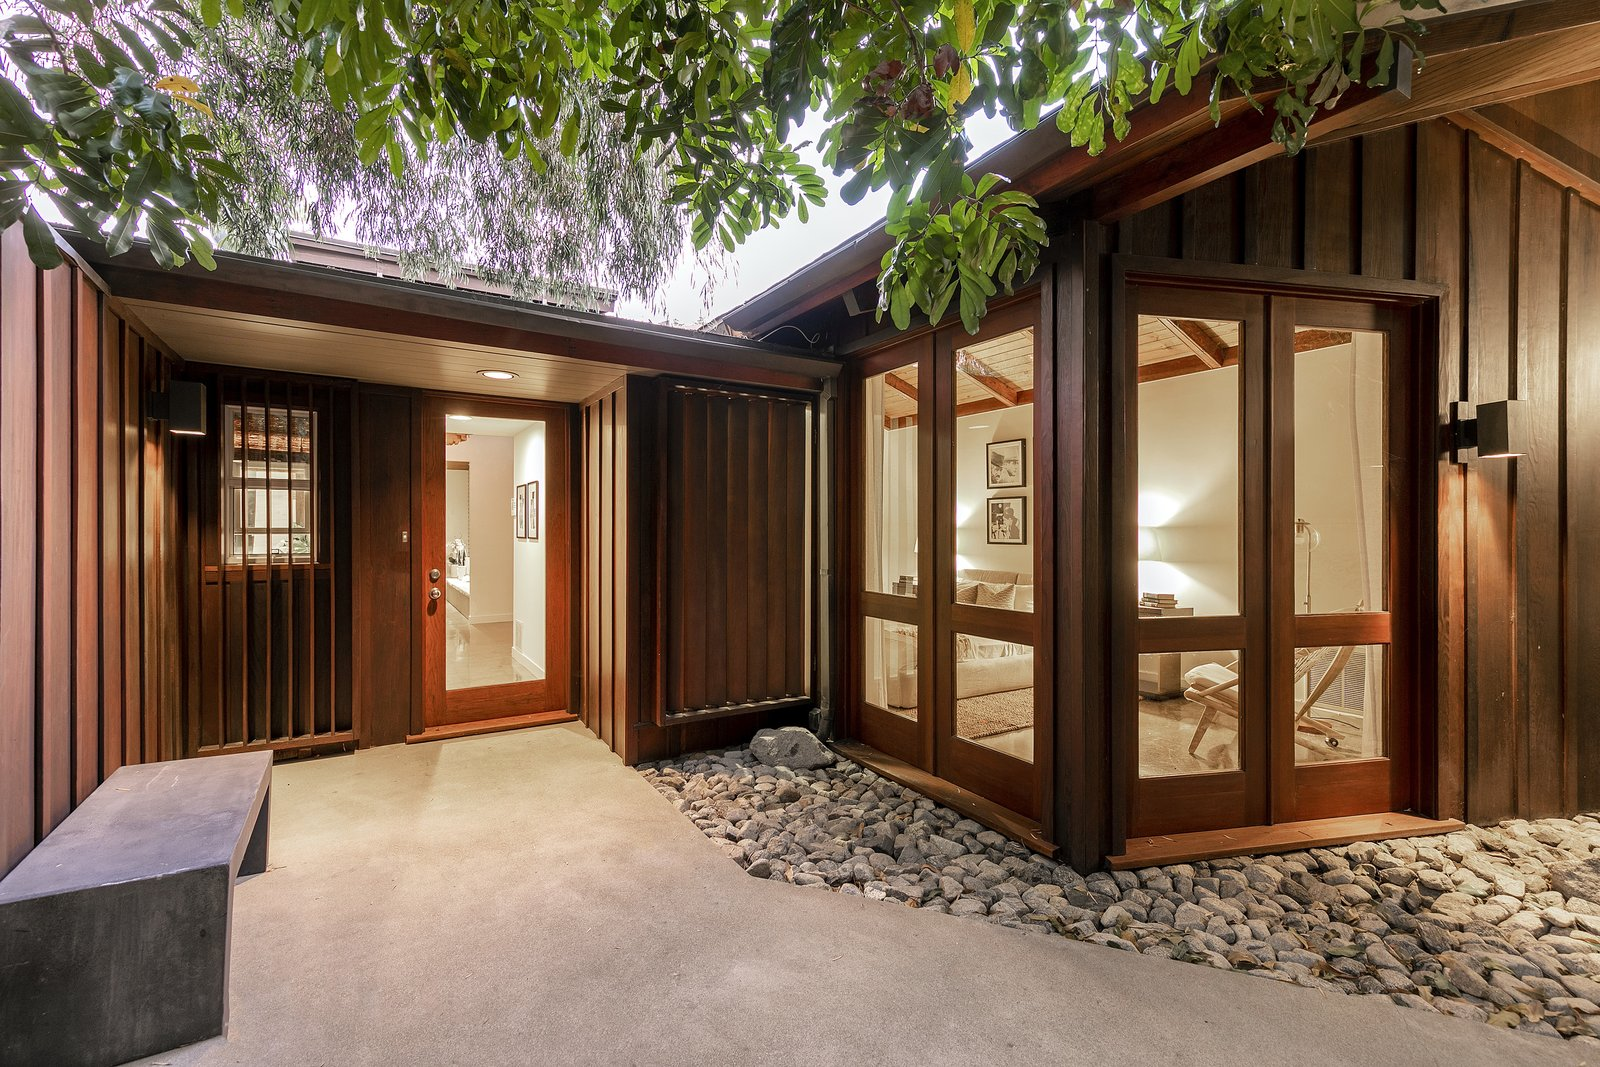 A view of the main entrance, which appears nestled within the trees. The minimalist exterior is clad in wood and surrounded by stones, creating a Zen-like retreat.